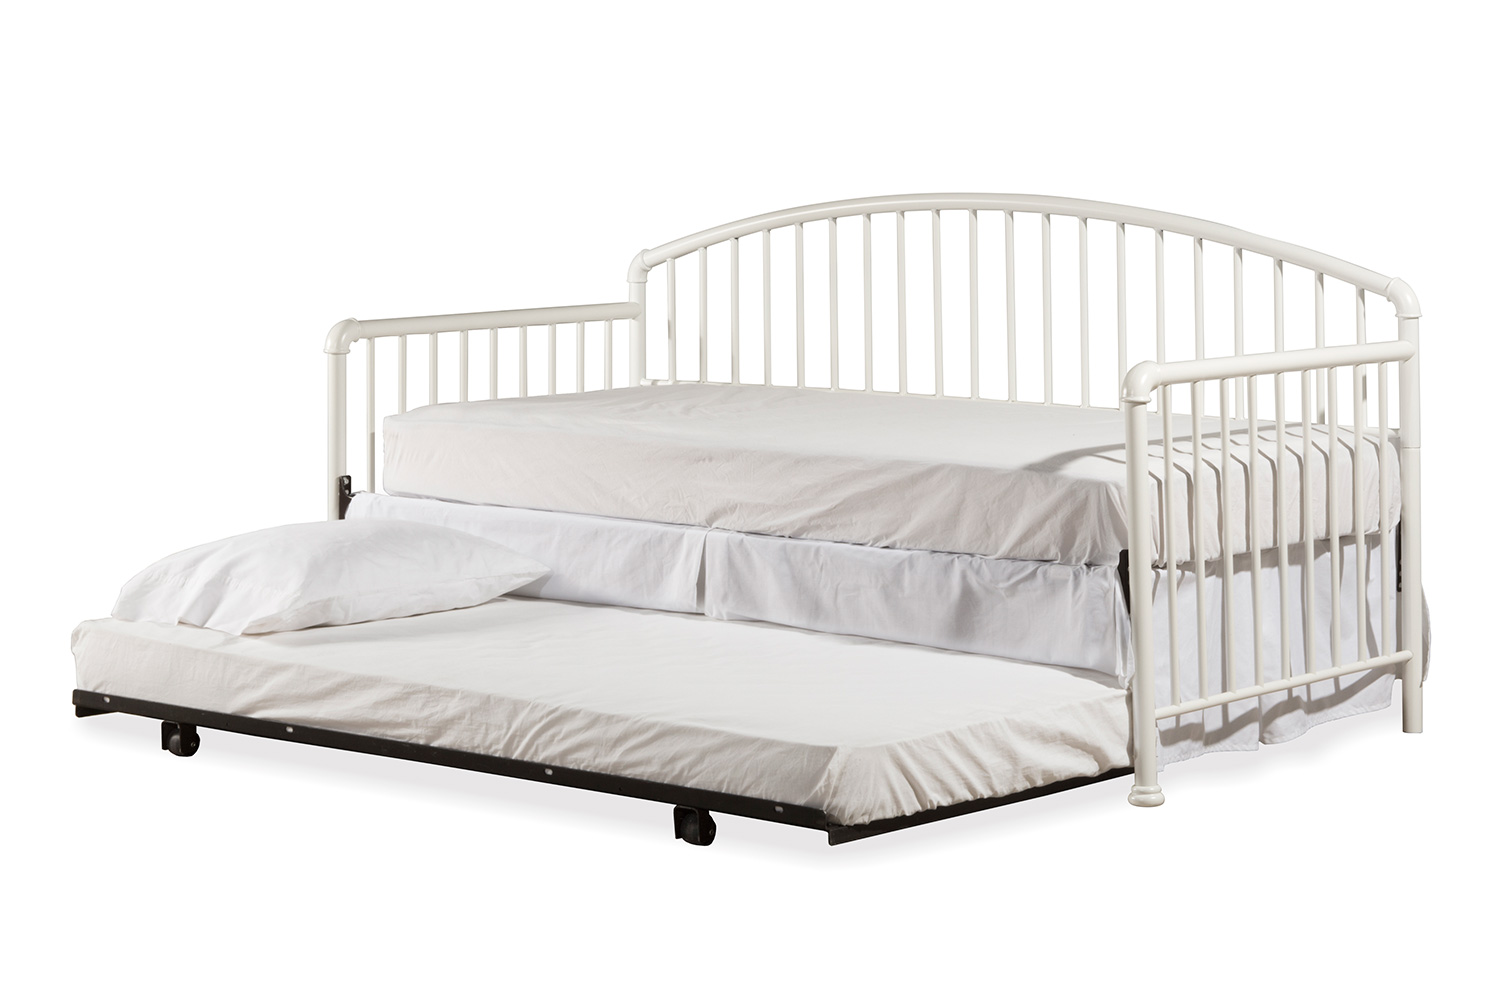 Hillsdale Brandi Daybed with Trundle - White